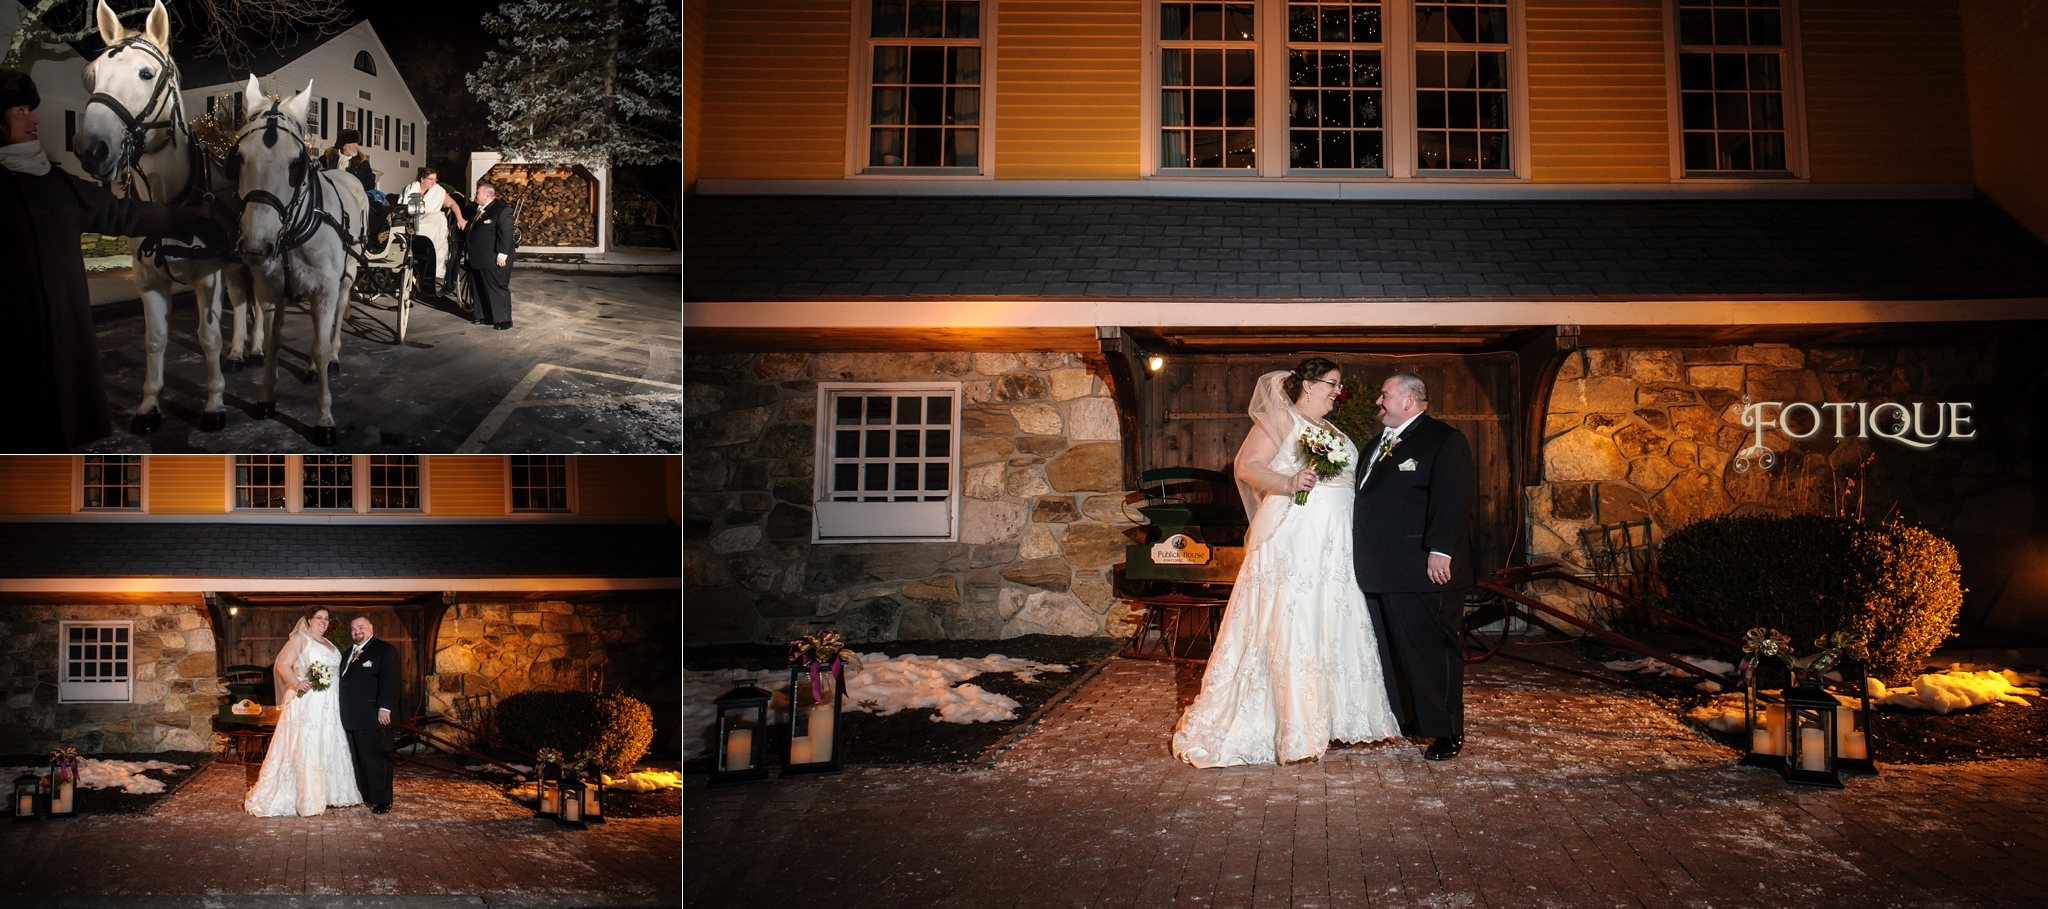 Hingham MA Wedding Photographer  Publick House Wedding  Burgundy and Champagne Wedding Winter Wedding Horse and Carriage Catholic Wedding Twinkle Lights Lanterns Bride and Groom Night Wedding Historical Inn Wedding Fotique